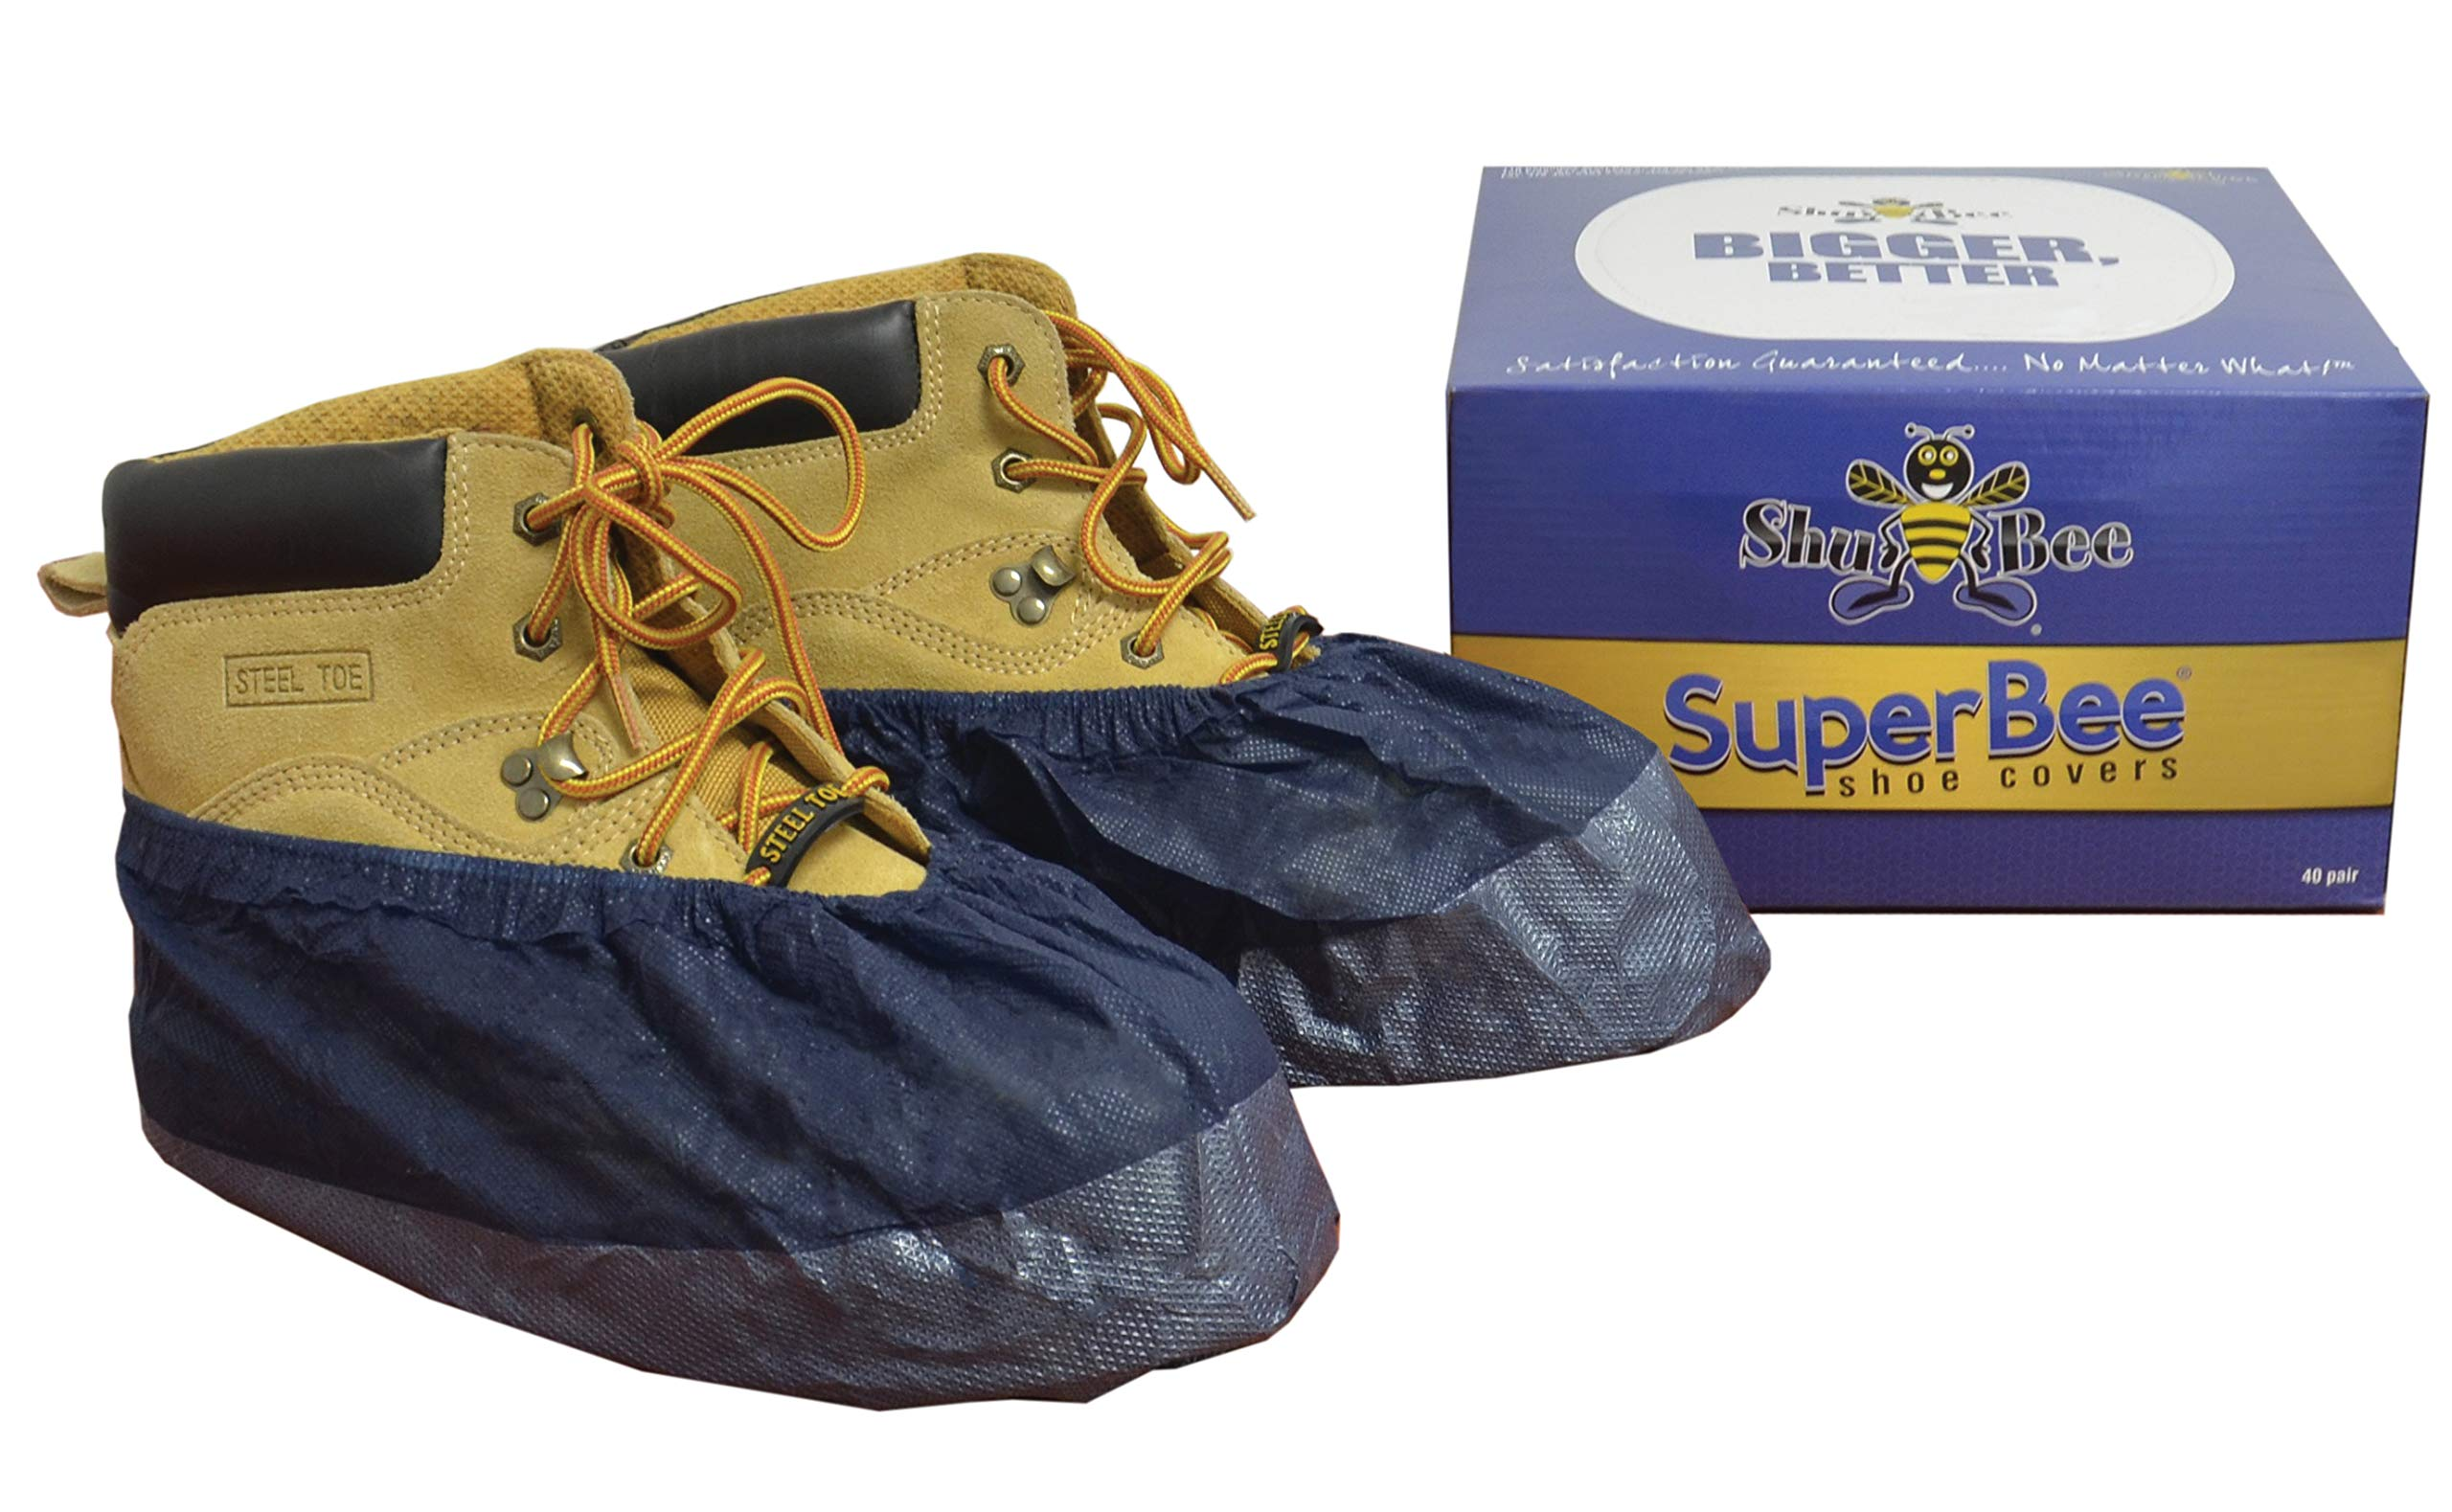 ShuBee SuperBee Shoe Covers, Midnight Blue (40 Pair) by ShuBee